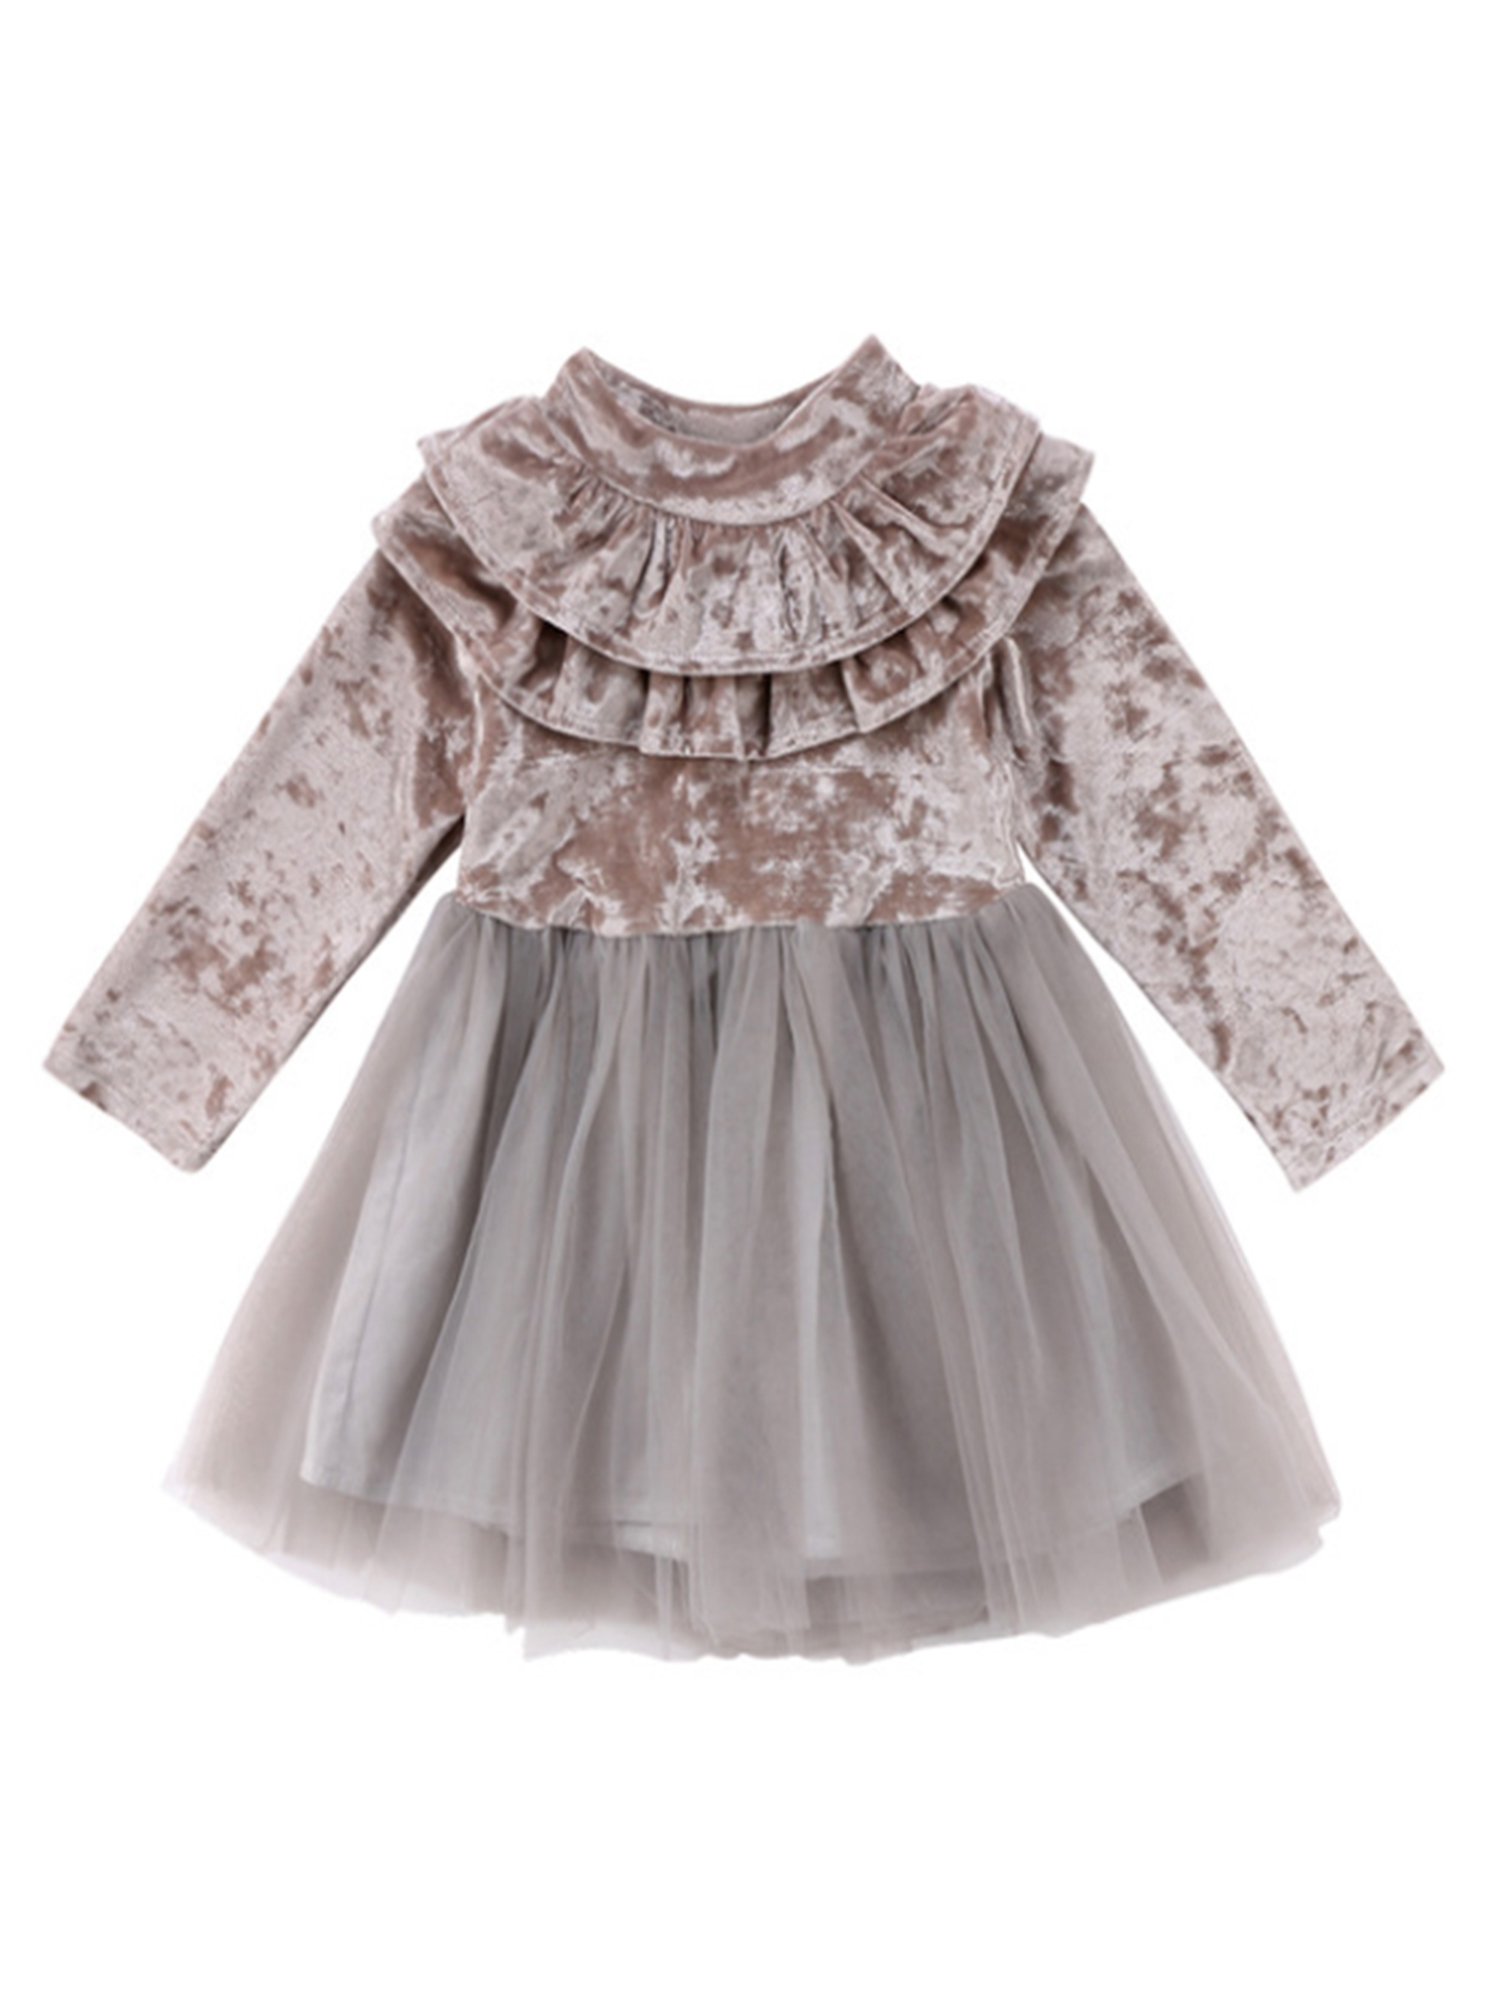 stylesilove Little Girls Long Sleeve Ruffle Trim Velvet Tutu Dress (120/3-4 Years, Burgundy)